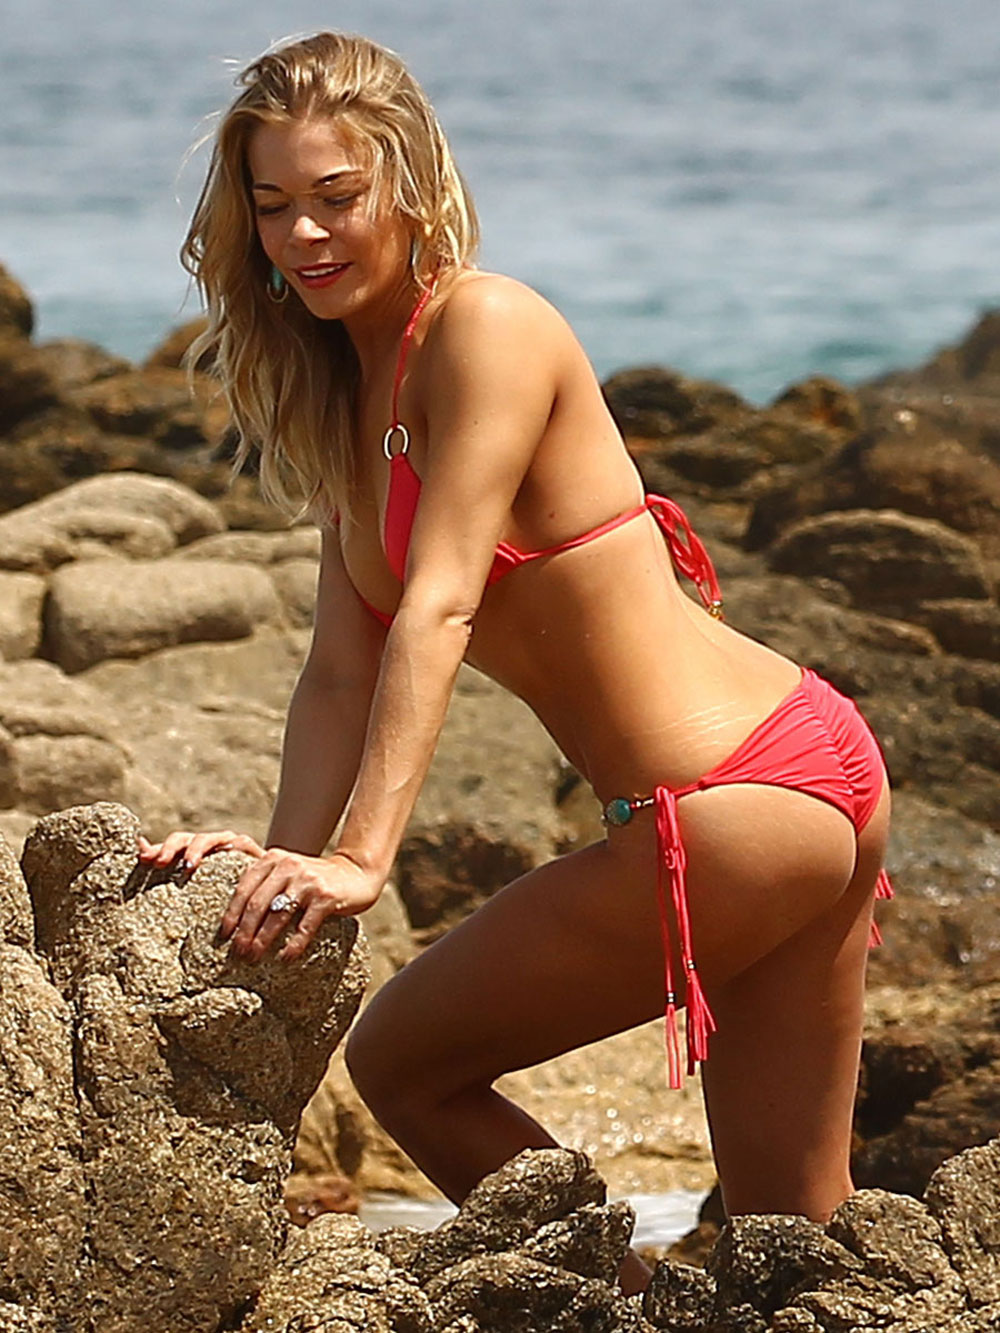 LEANN RIMES Bikini Candids at the Beach in Cabo San Lucas: www.hawtcelebs.com/category/leann-rimes/page/7